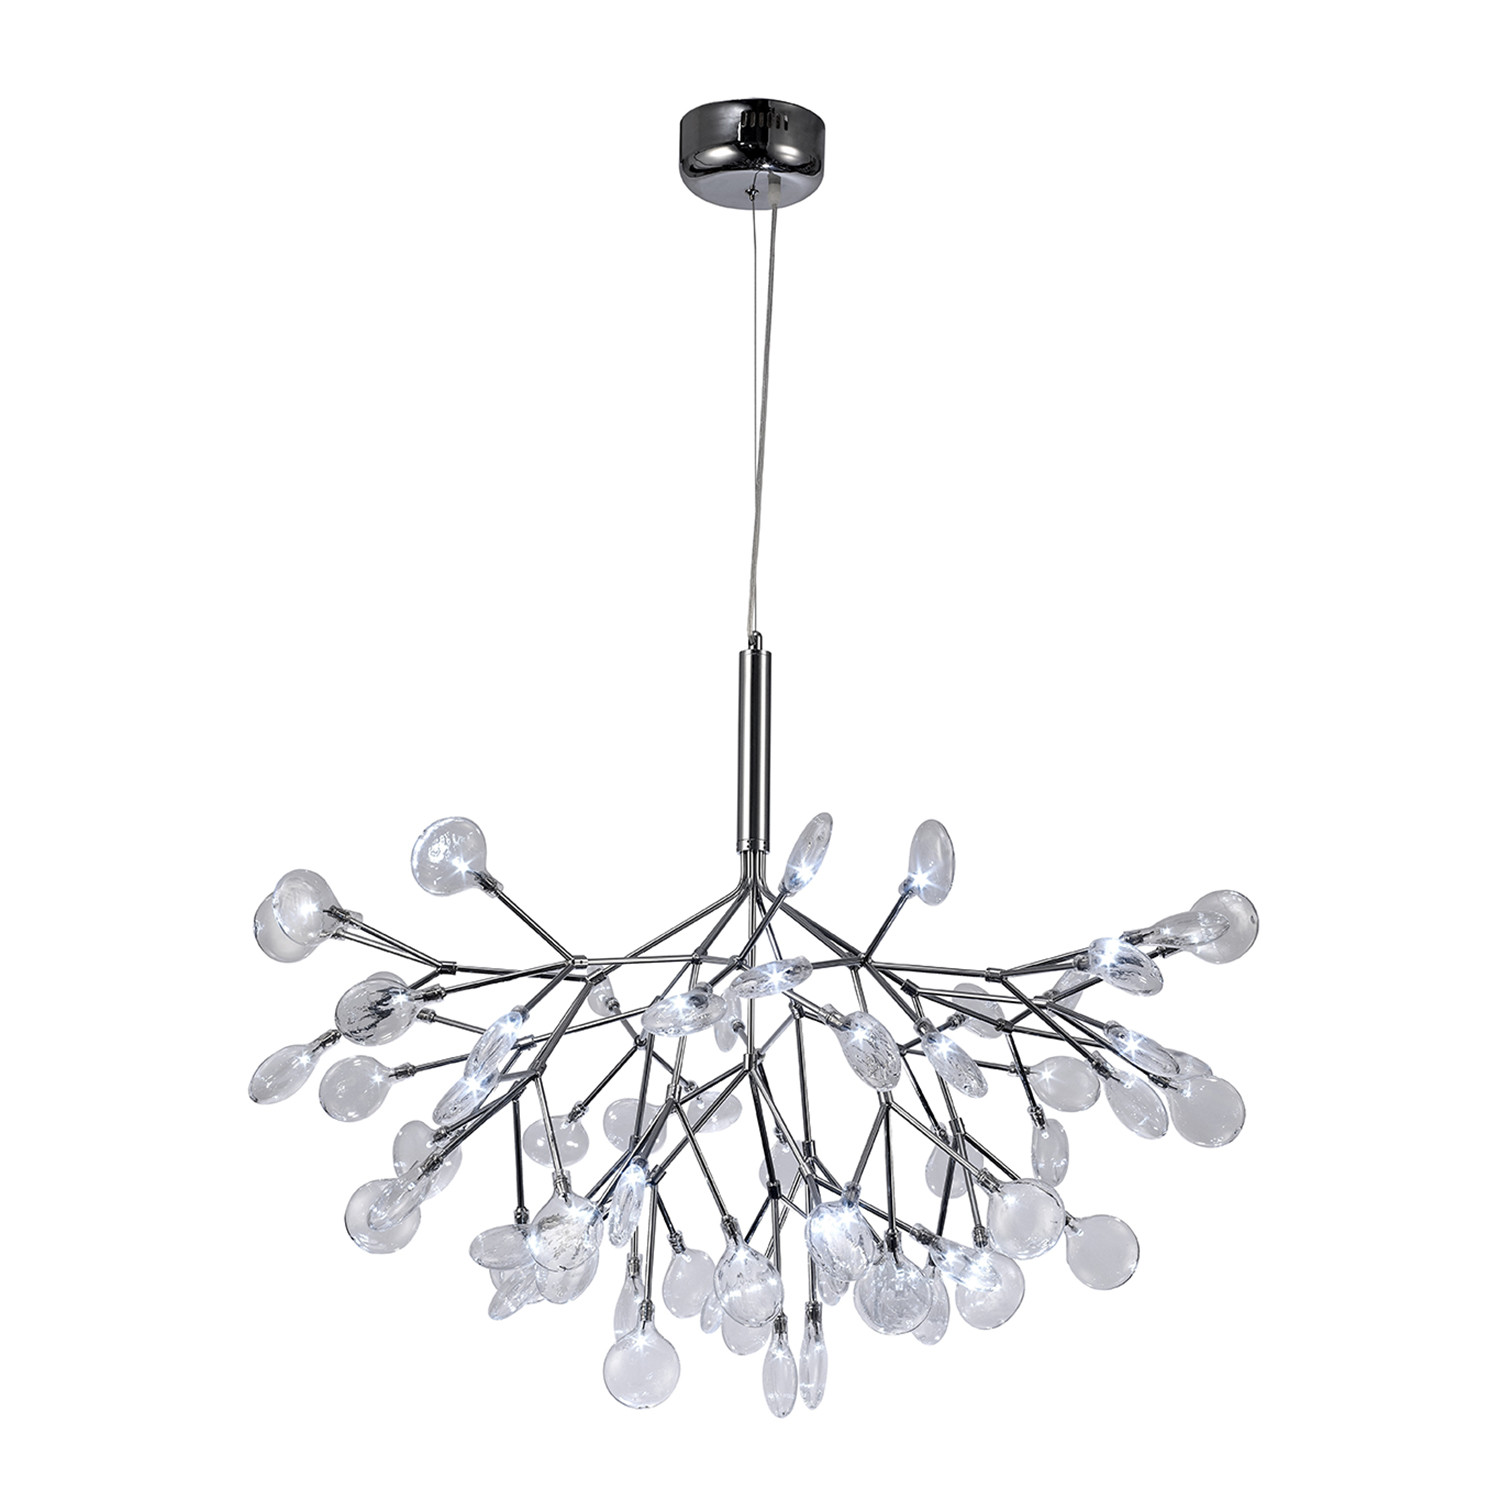 karry chandelier - contempo lights